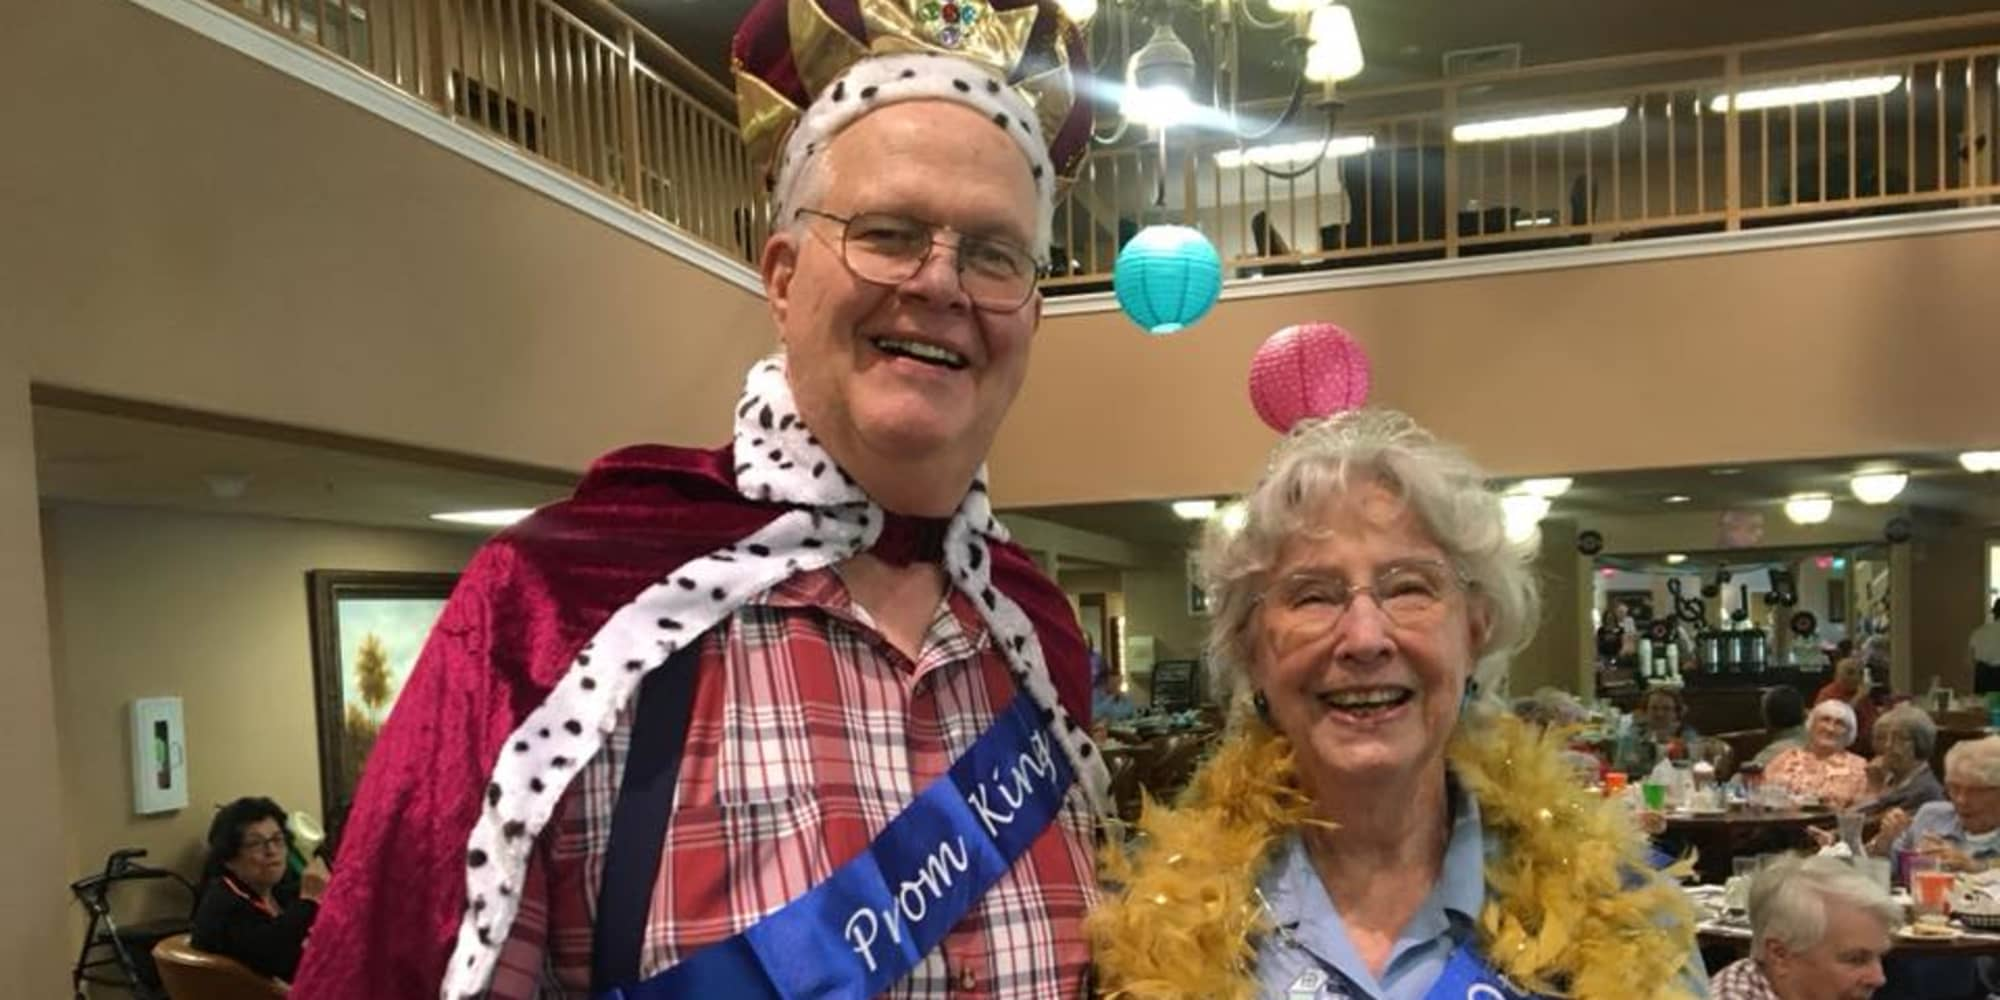 Prom king and queen at Providence Meadows Gracious Retirement Living in Charlotte, North Carolina